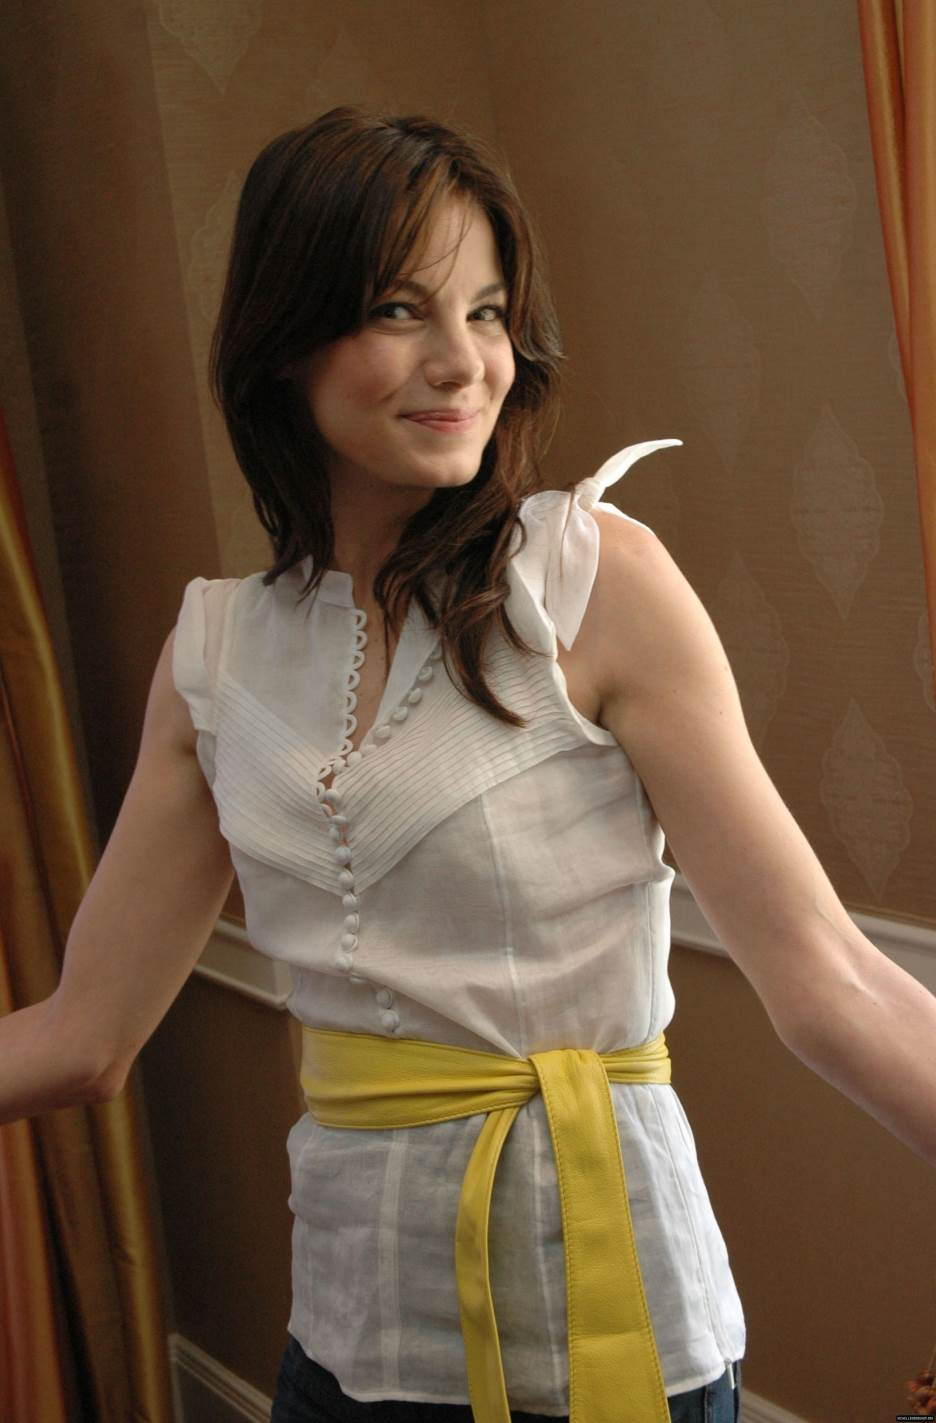 Michelle Monaghan Wallpapers High Resolution and Quality Download 936x1423